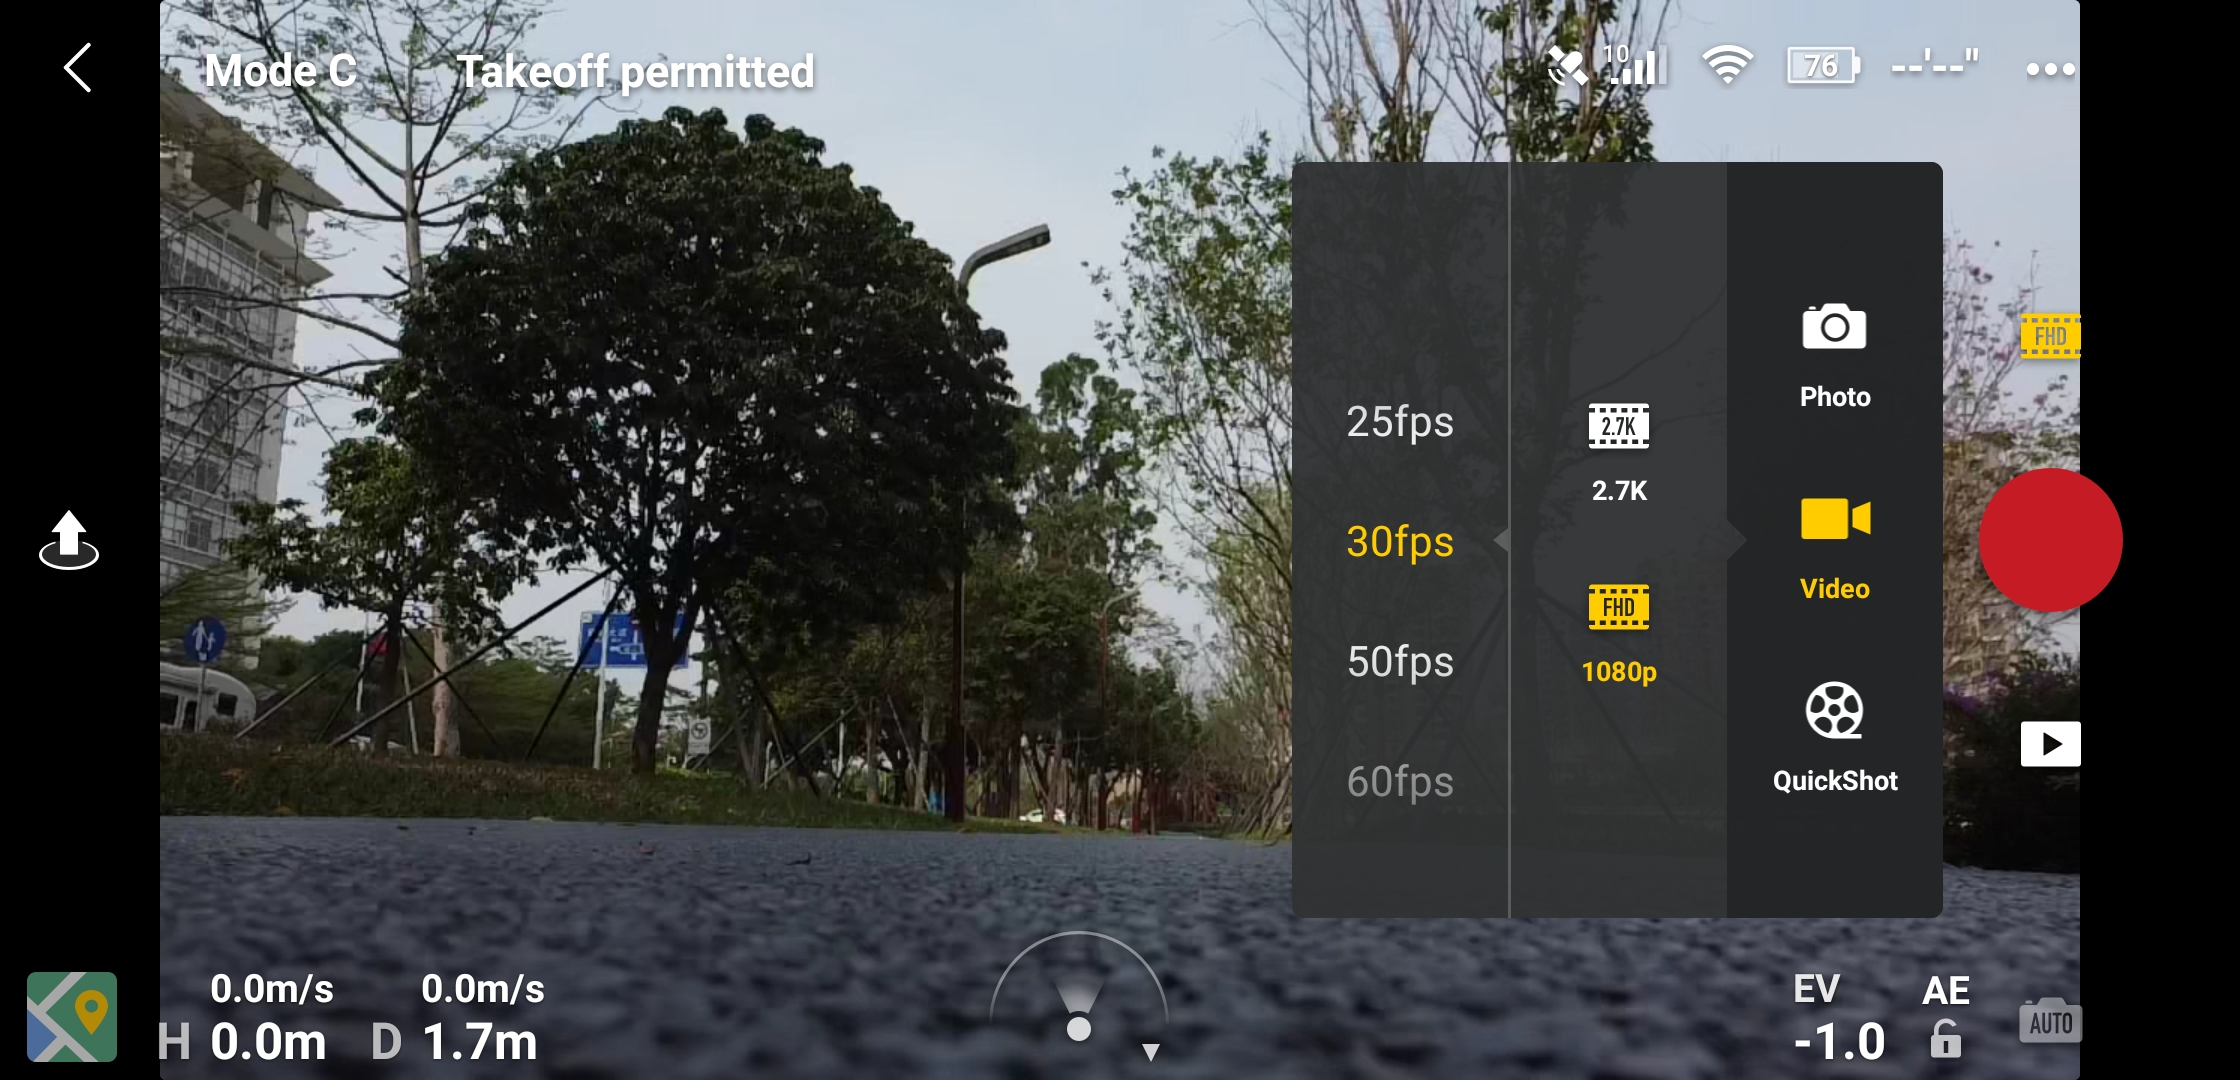 Mavic Mini Video specs in DJI pilot software